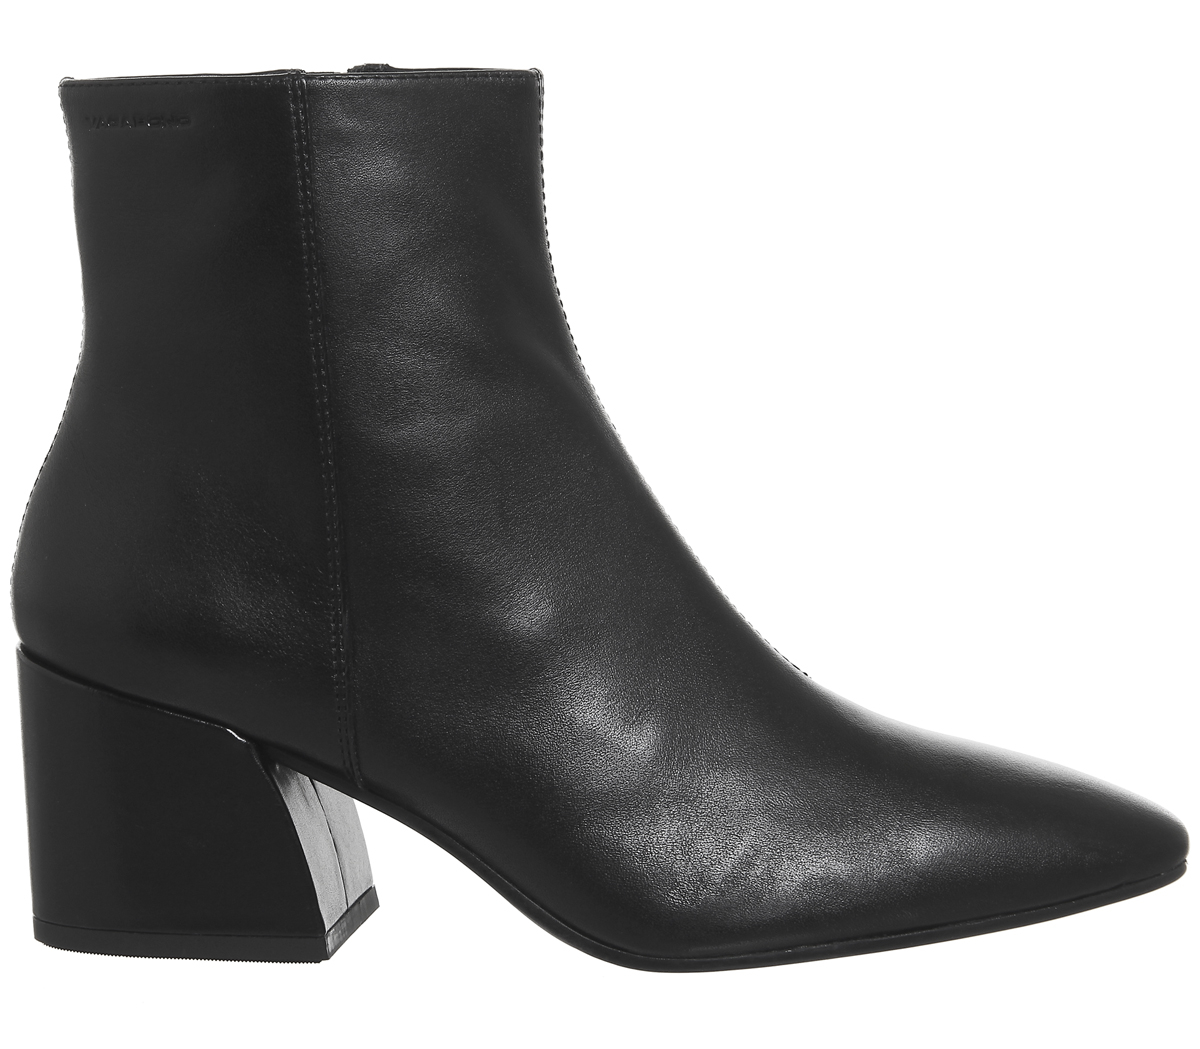 Damenschuhe Vagabond Olivia Block LEATHER Heel Stiefel BLACK LEATHER Block Stiefel 67d385